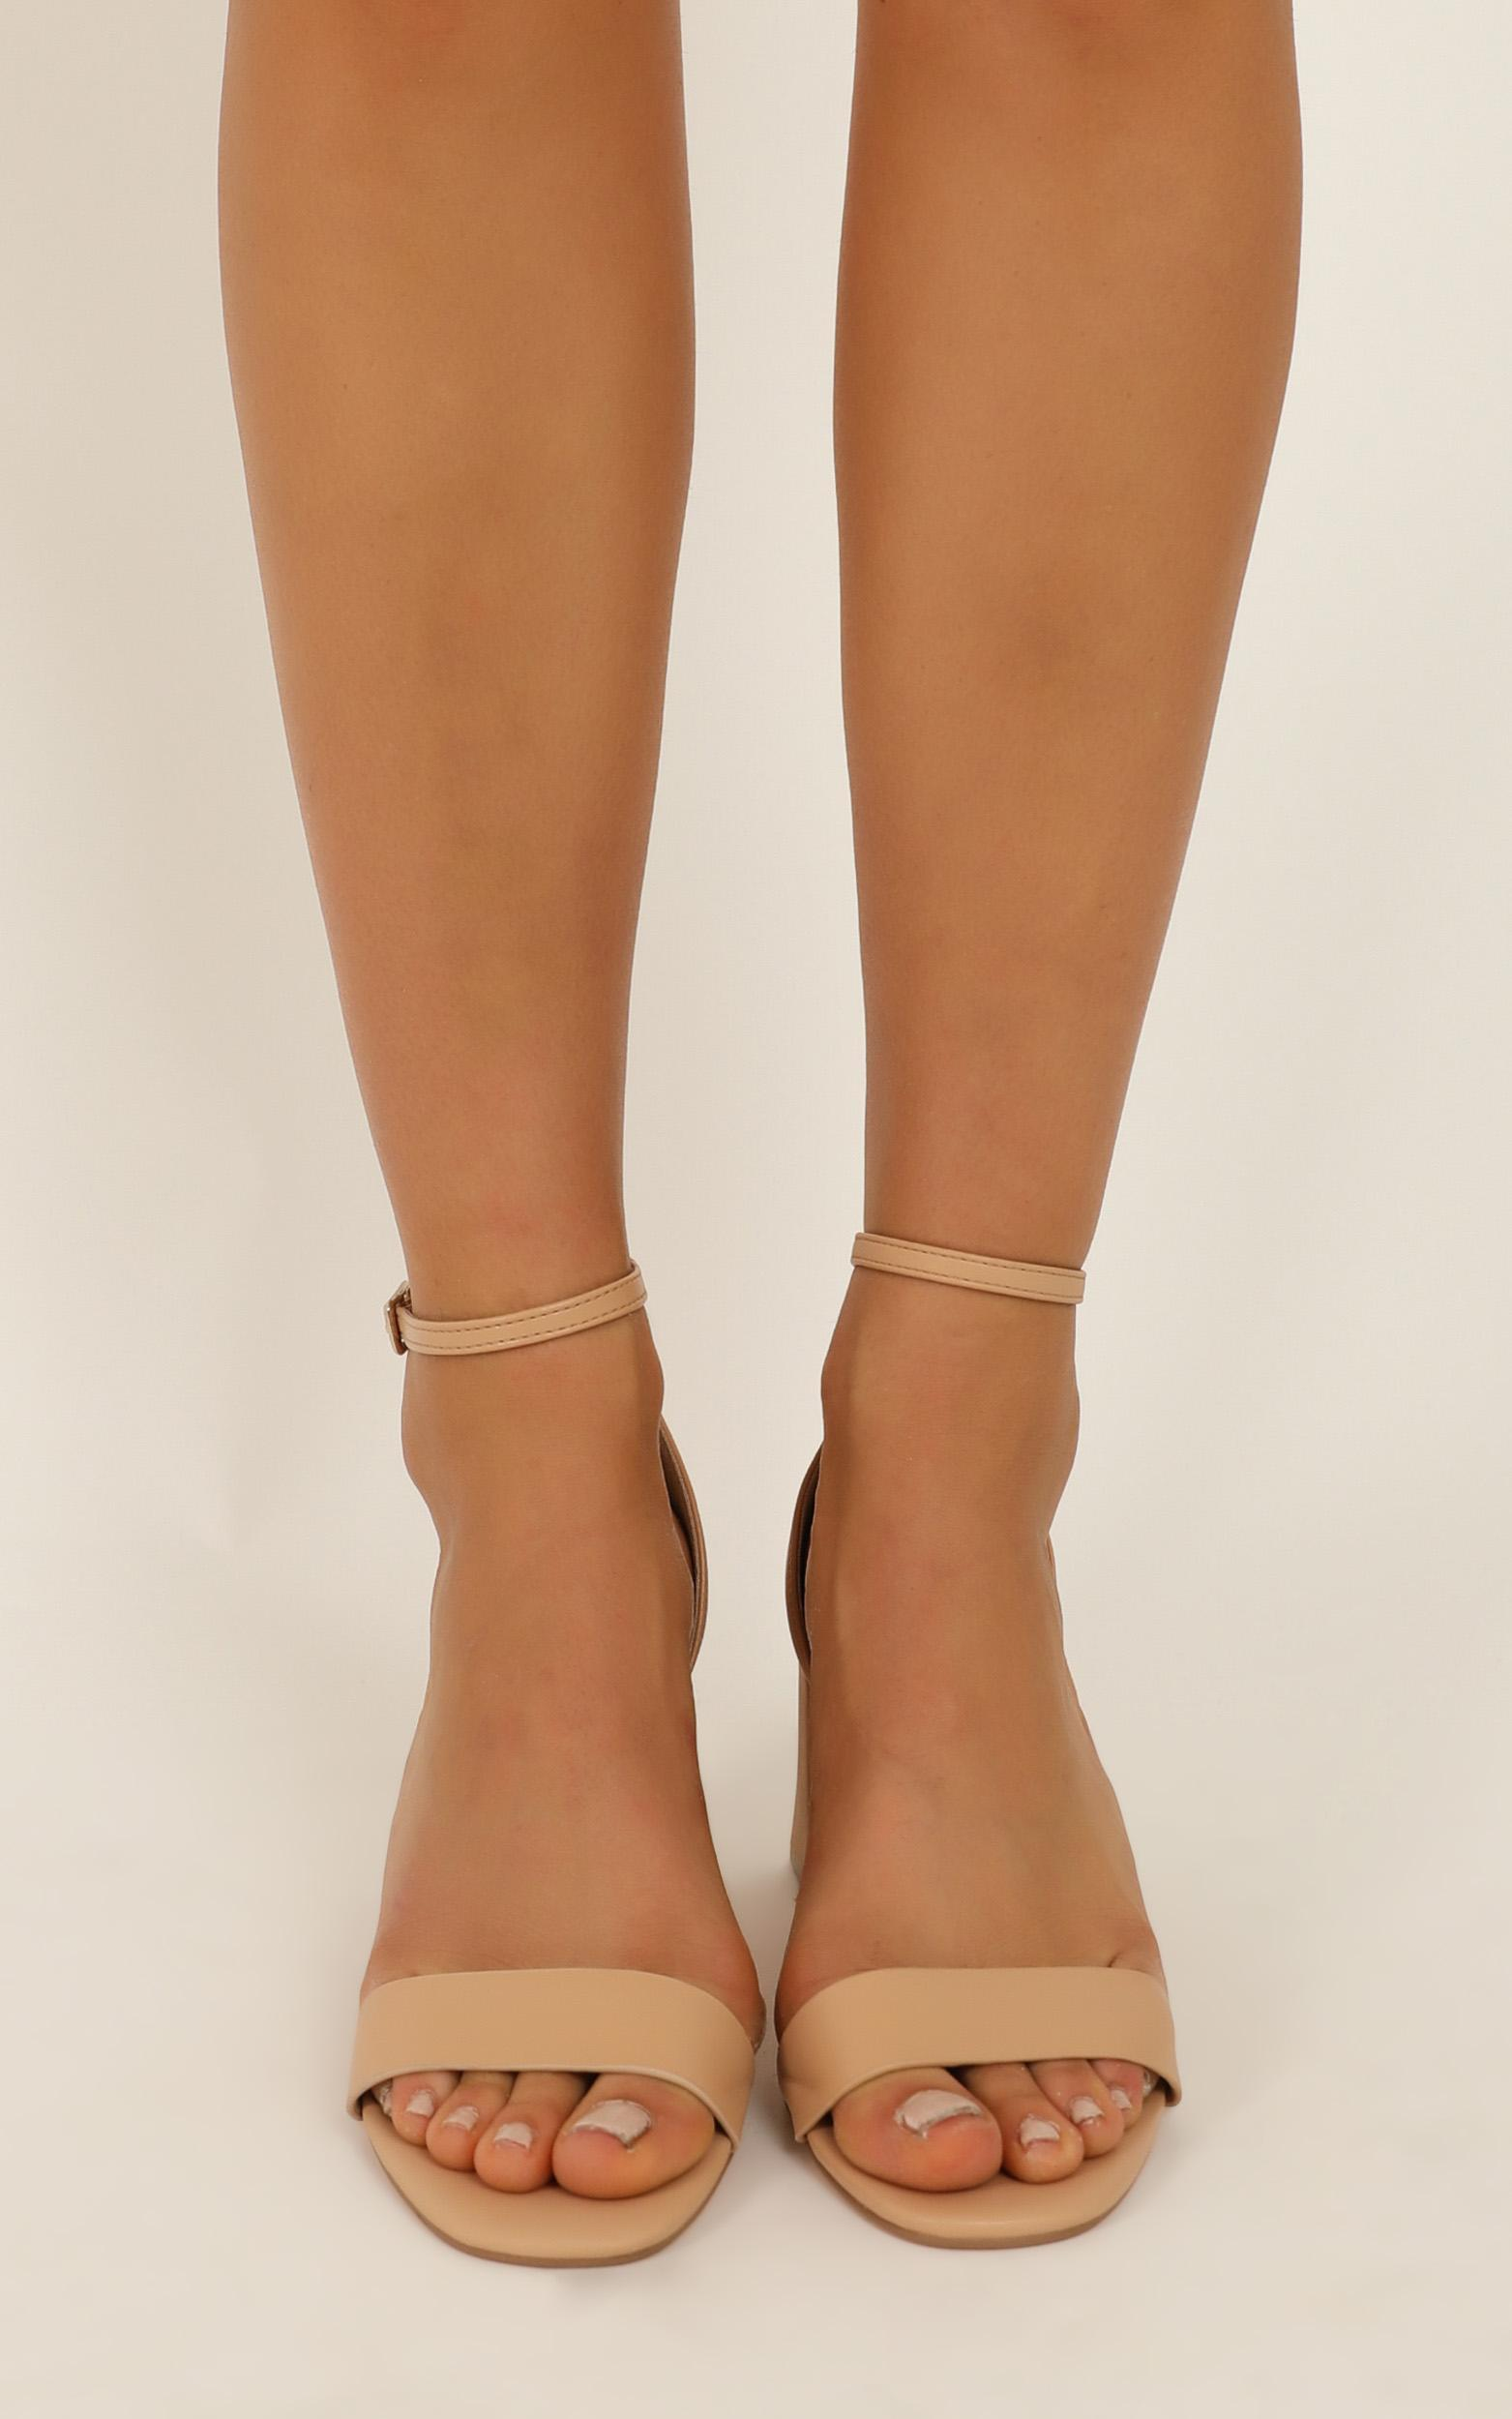 Verali - Indi heels in nude smooth - 10, Beige, hi-res image number null